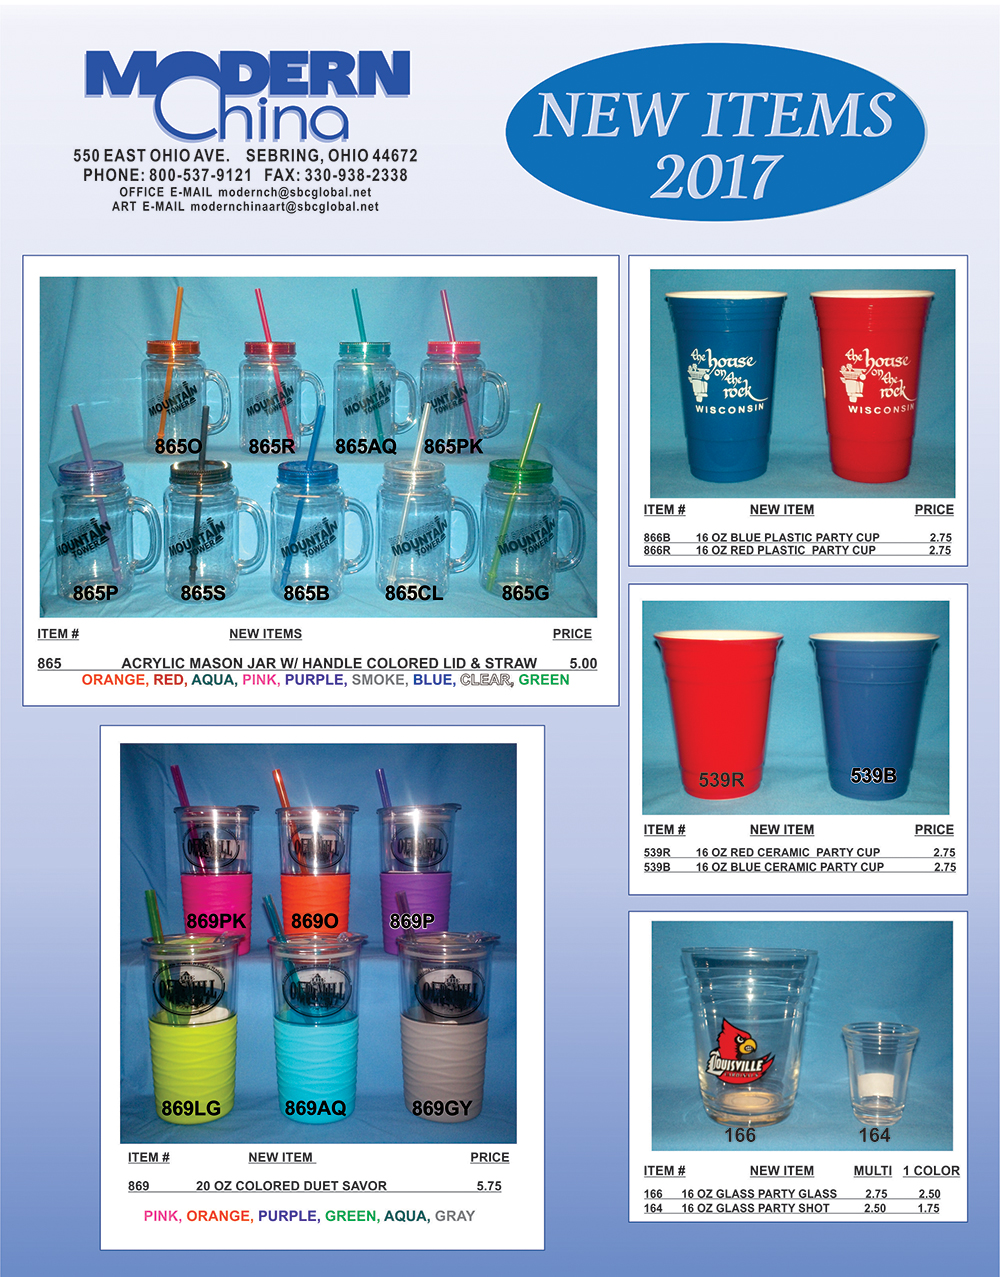 Modern China New Items for 2016-Page 1